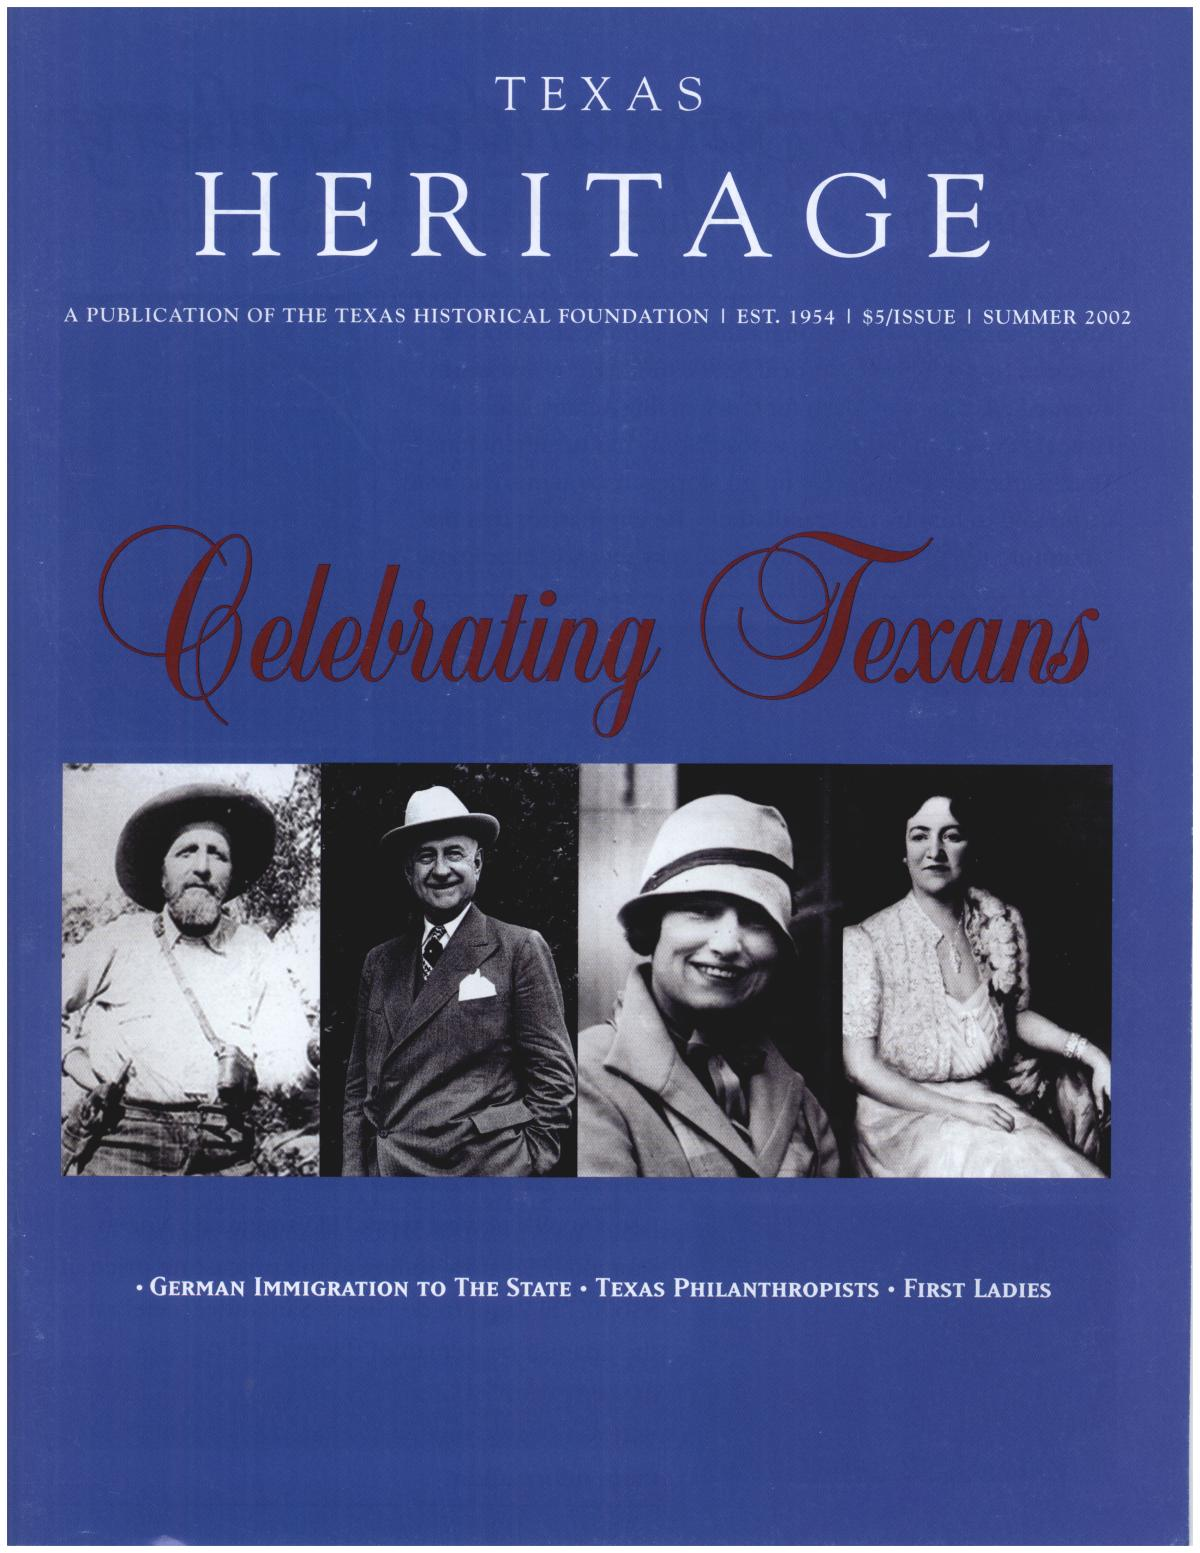 Texas Heritage, Summer 2002                                                                                                      Front Cover